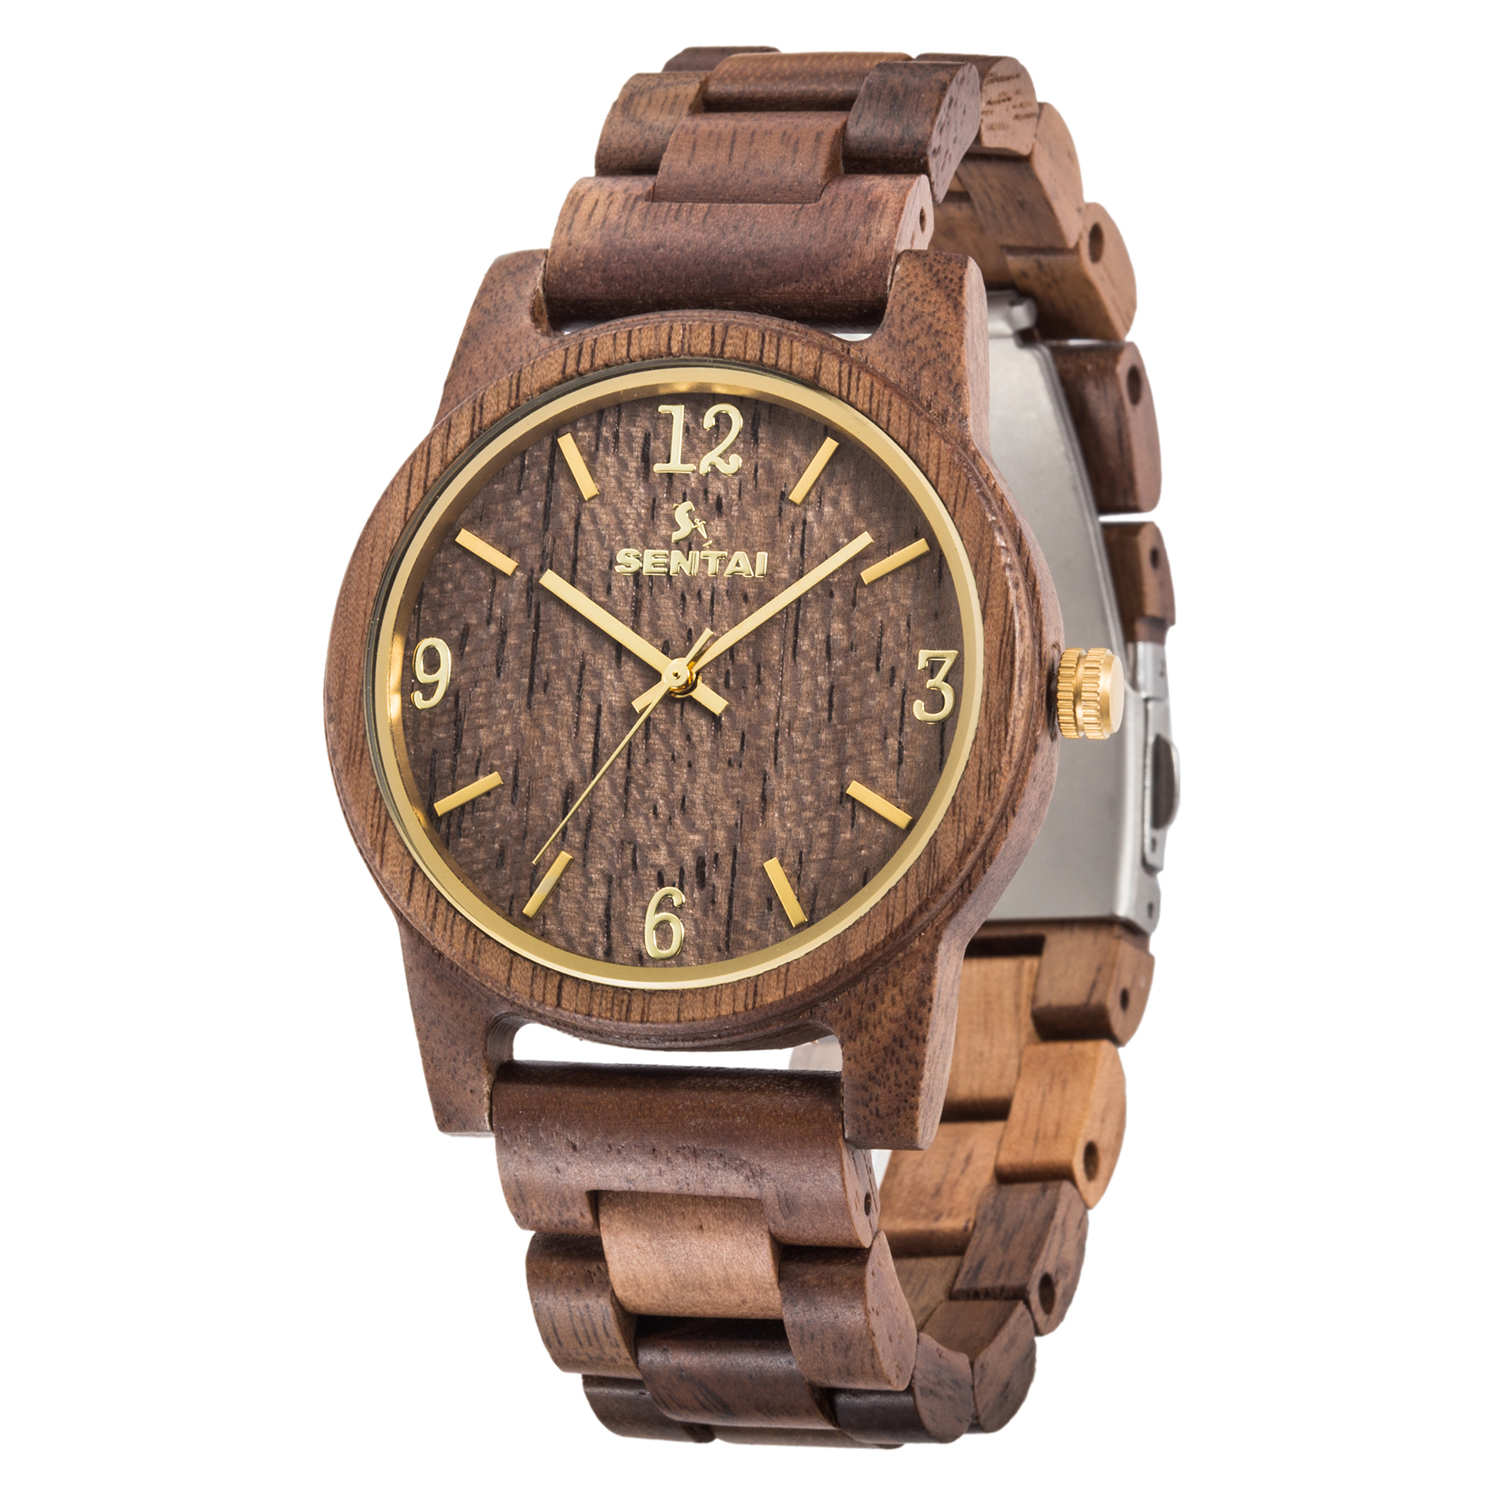 Luxury Brand Mens Wooden Watch Arabic Numberal Big Dial Wood Band Quartz Male Wrist Watch Reloj de Madera Genuine for Gifts fashion top gift item wood watches men s analog simple hand made wrist watch male sports quartz watch reloj de madera